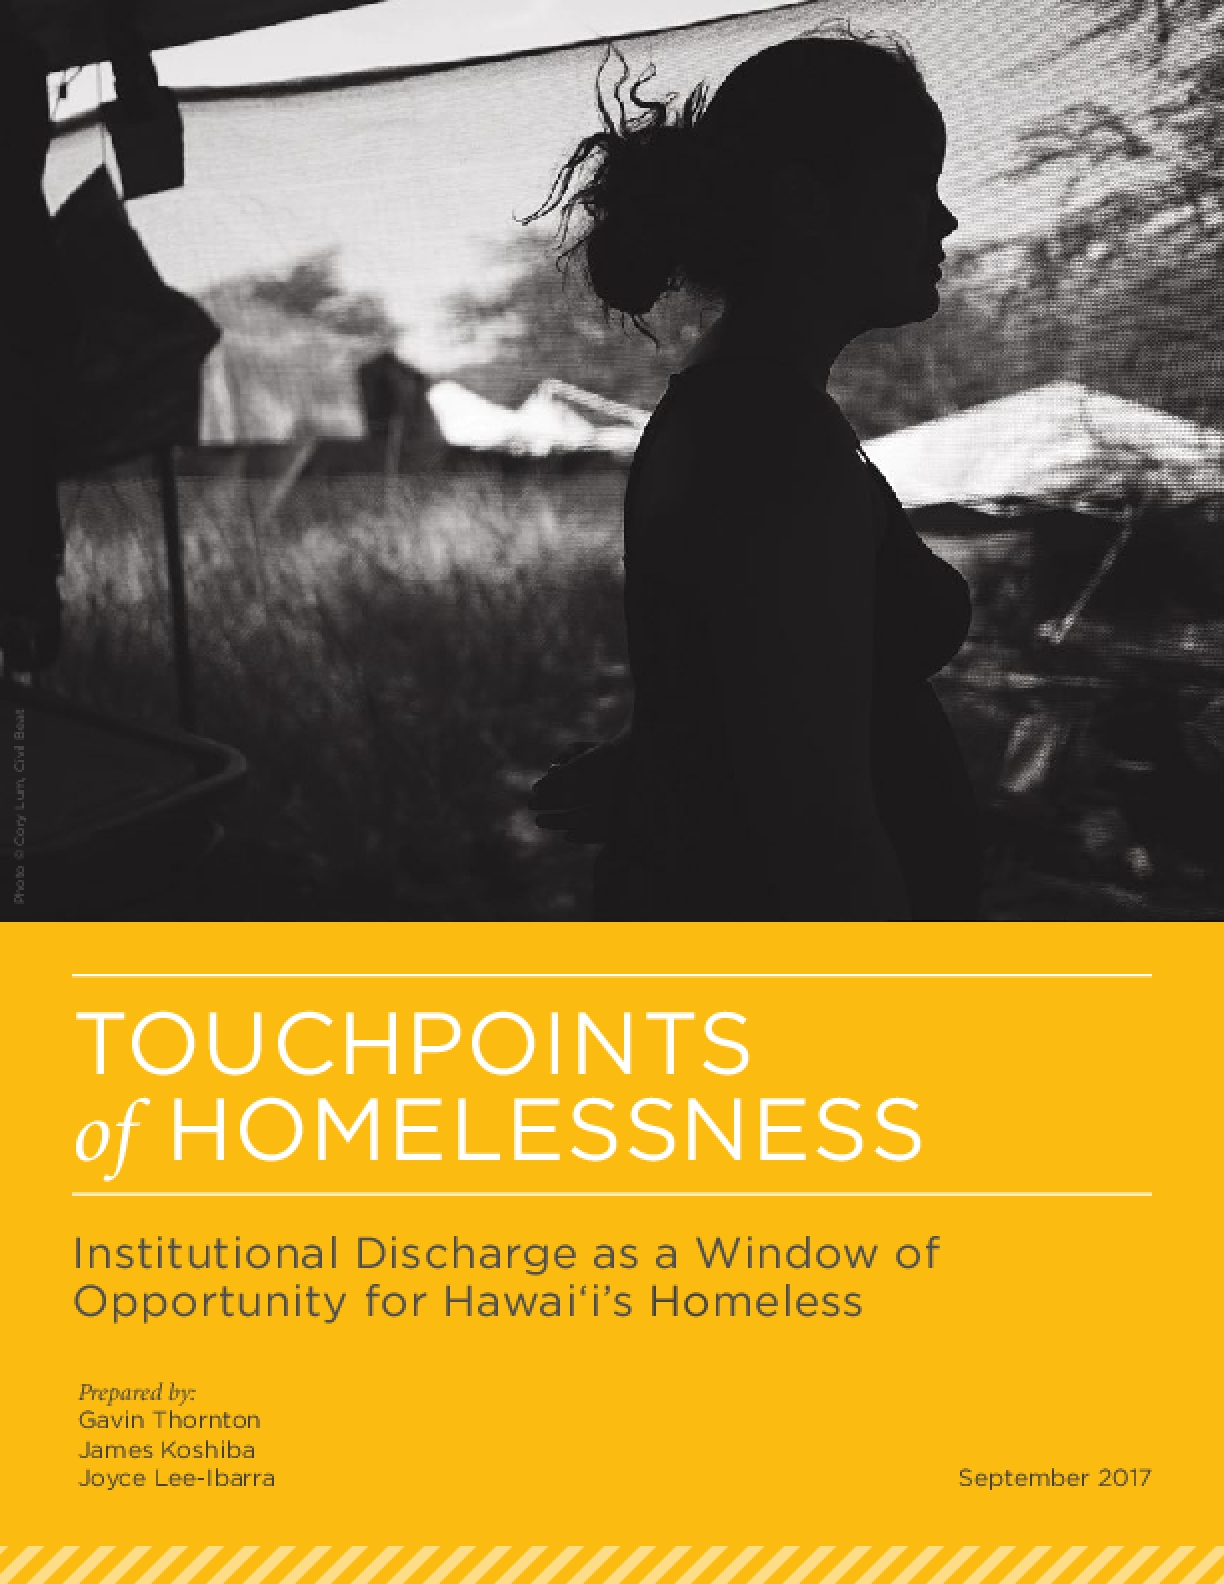 Touchpoints of Homelessness: Institutional Discharge as a Window of Opportunity for Hawaiʻi's Homeless